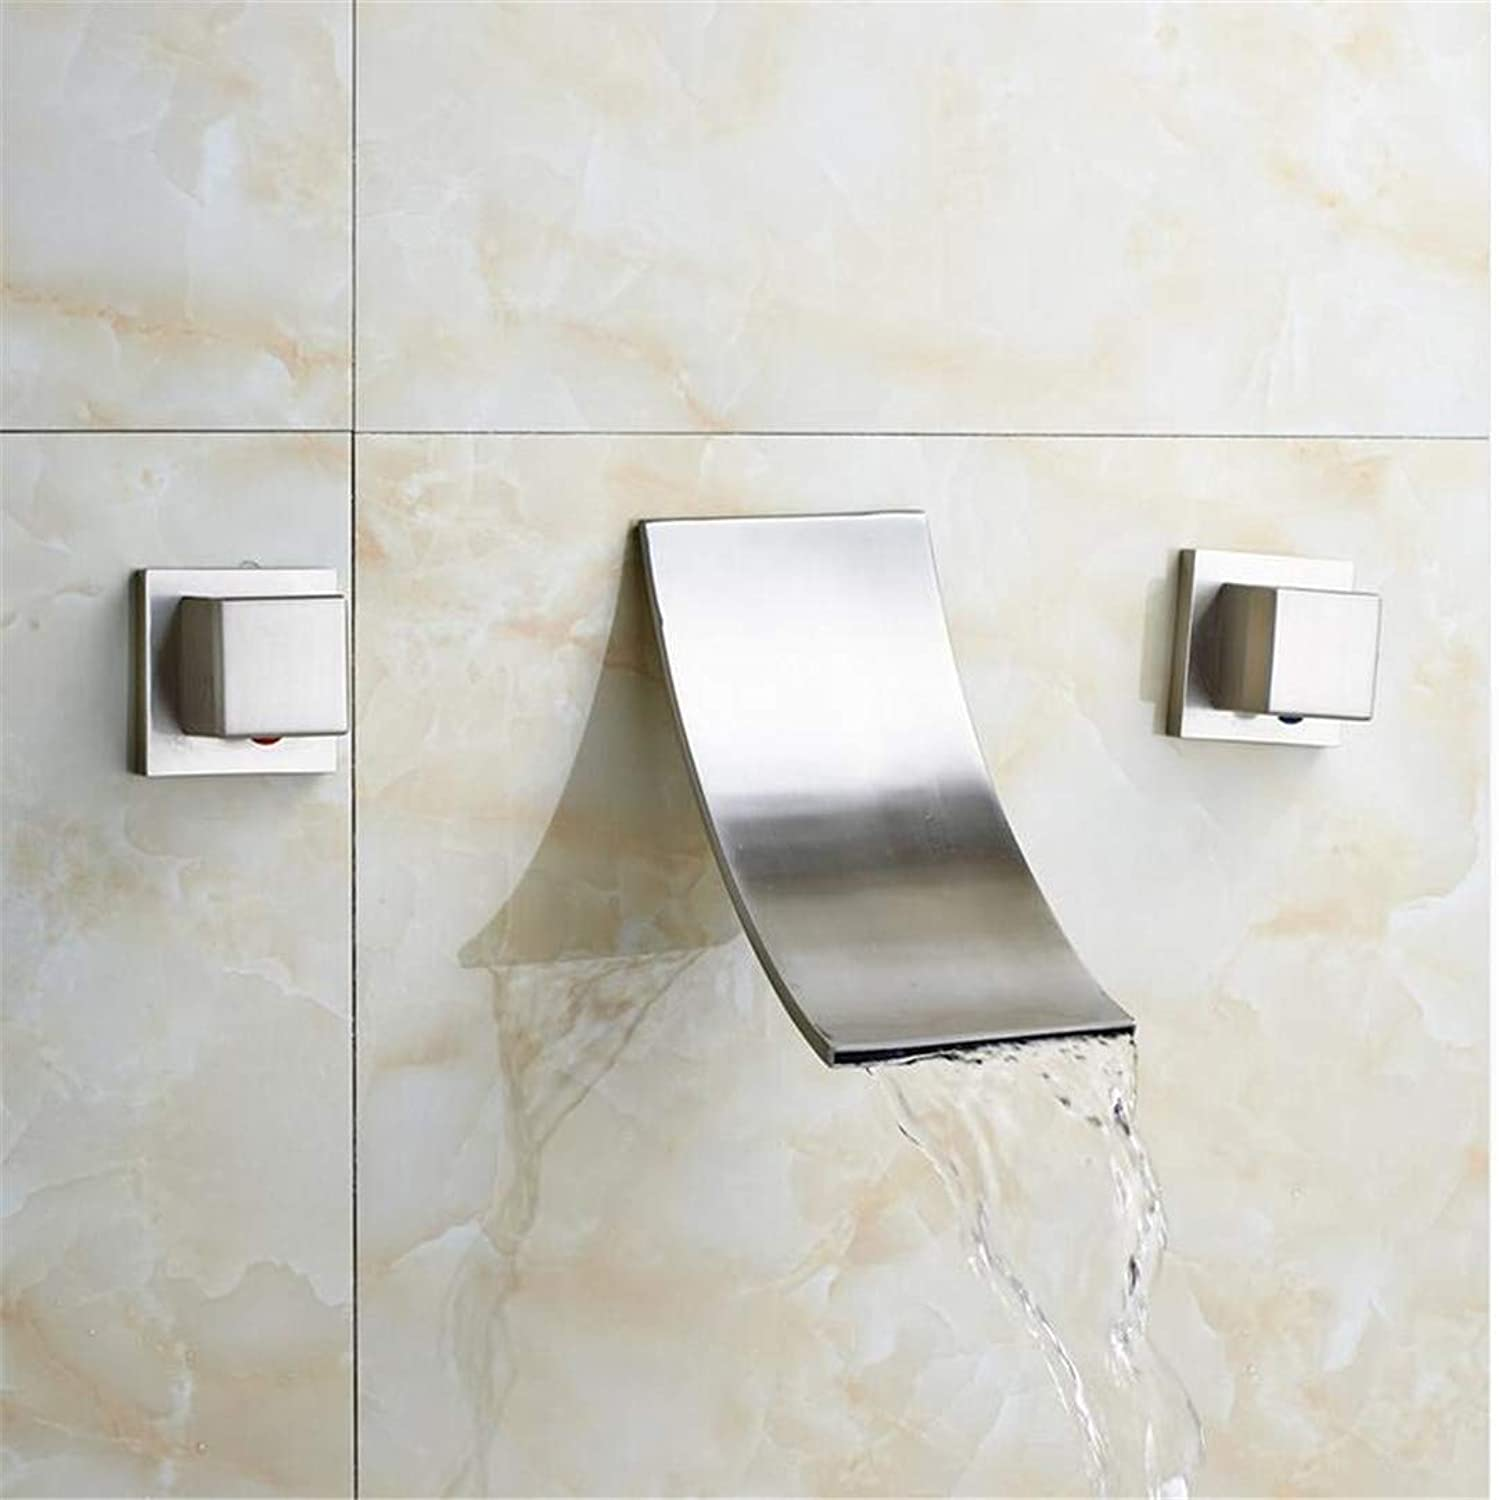 Bathroom Waterfall Spout Basin Faucet Two Handle in-Wall Brushed Nickel Mixer Taps